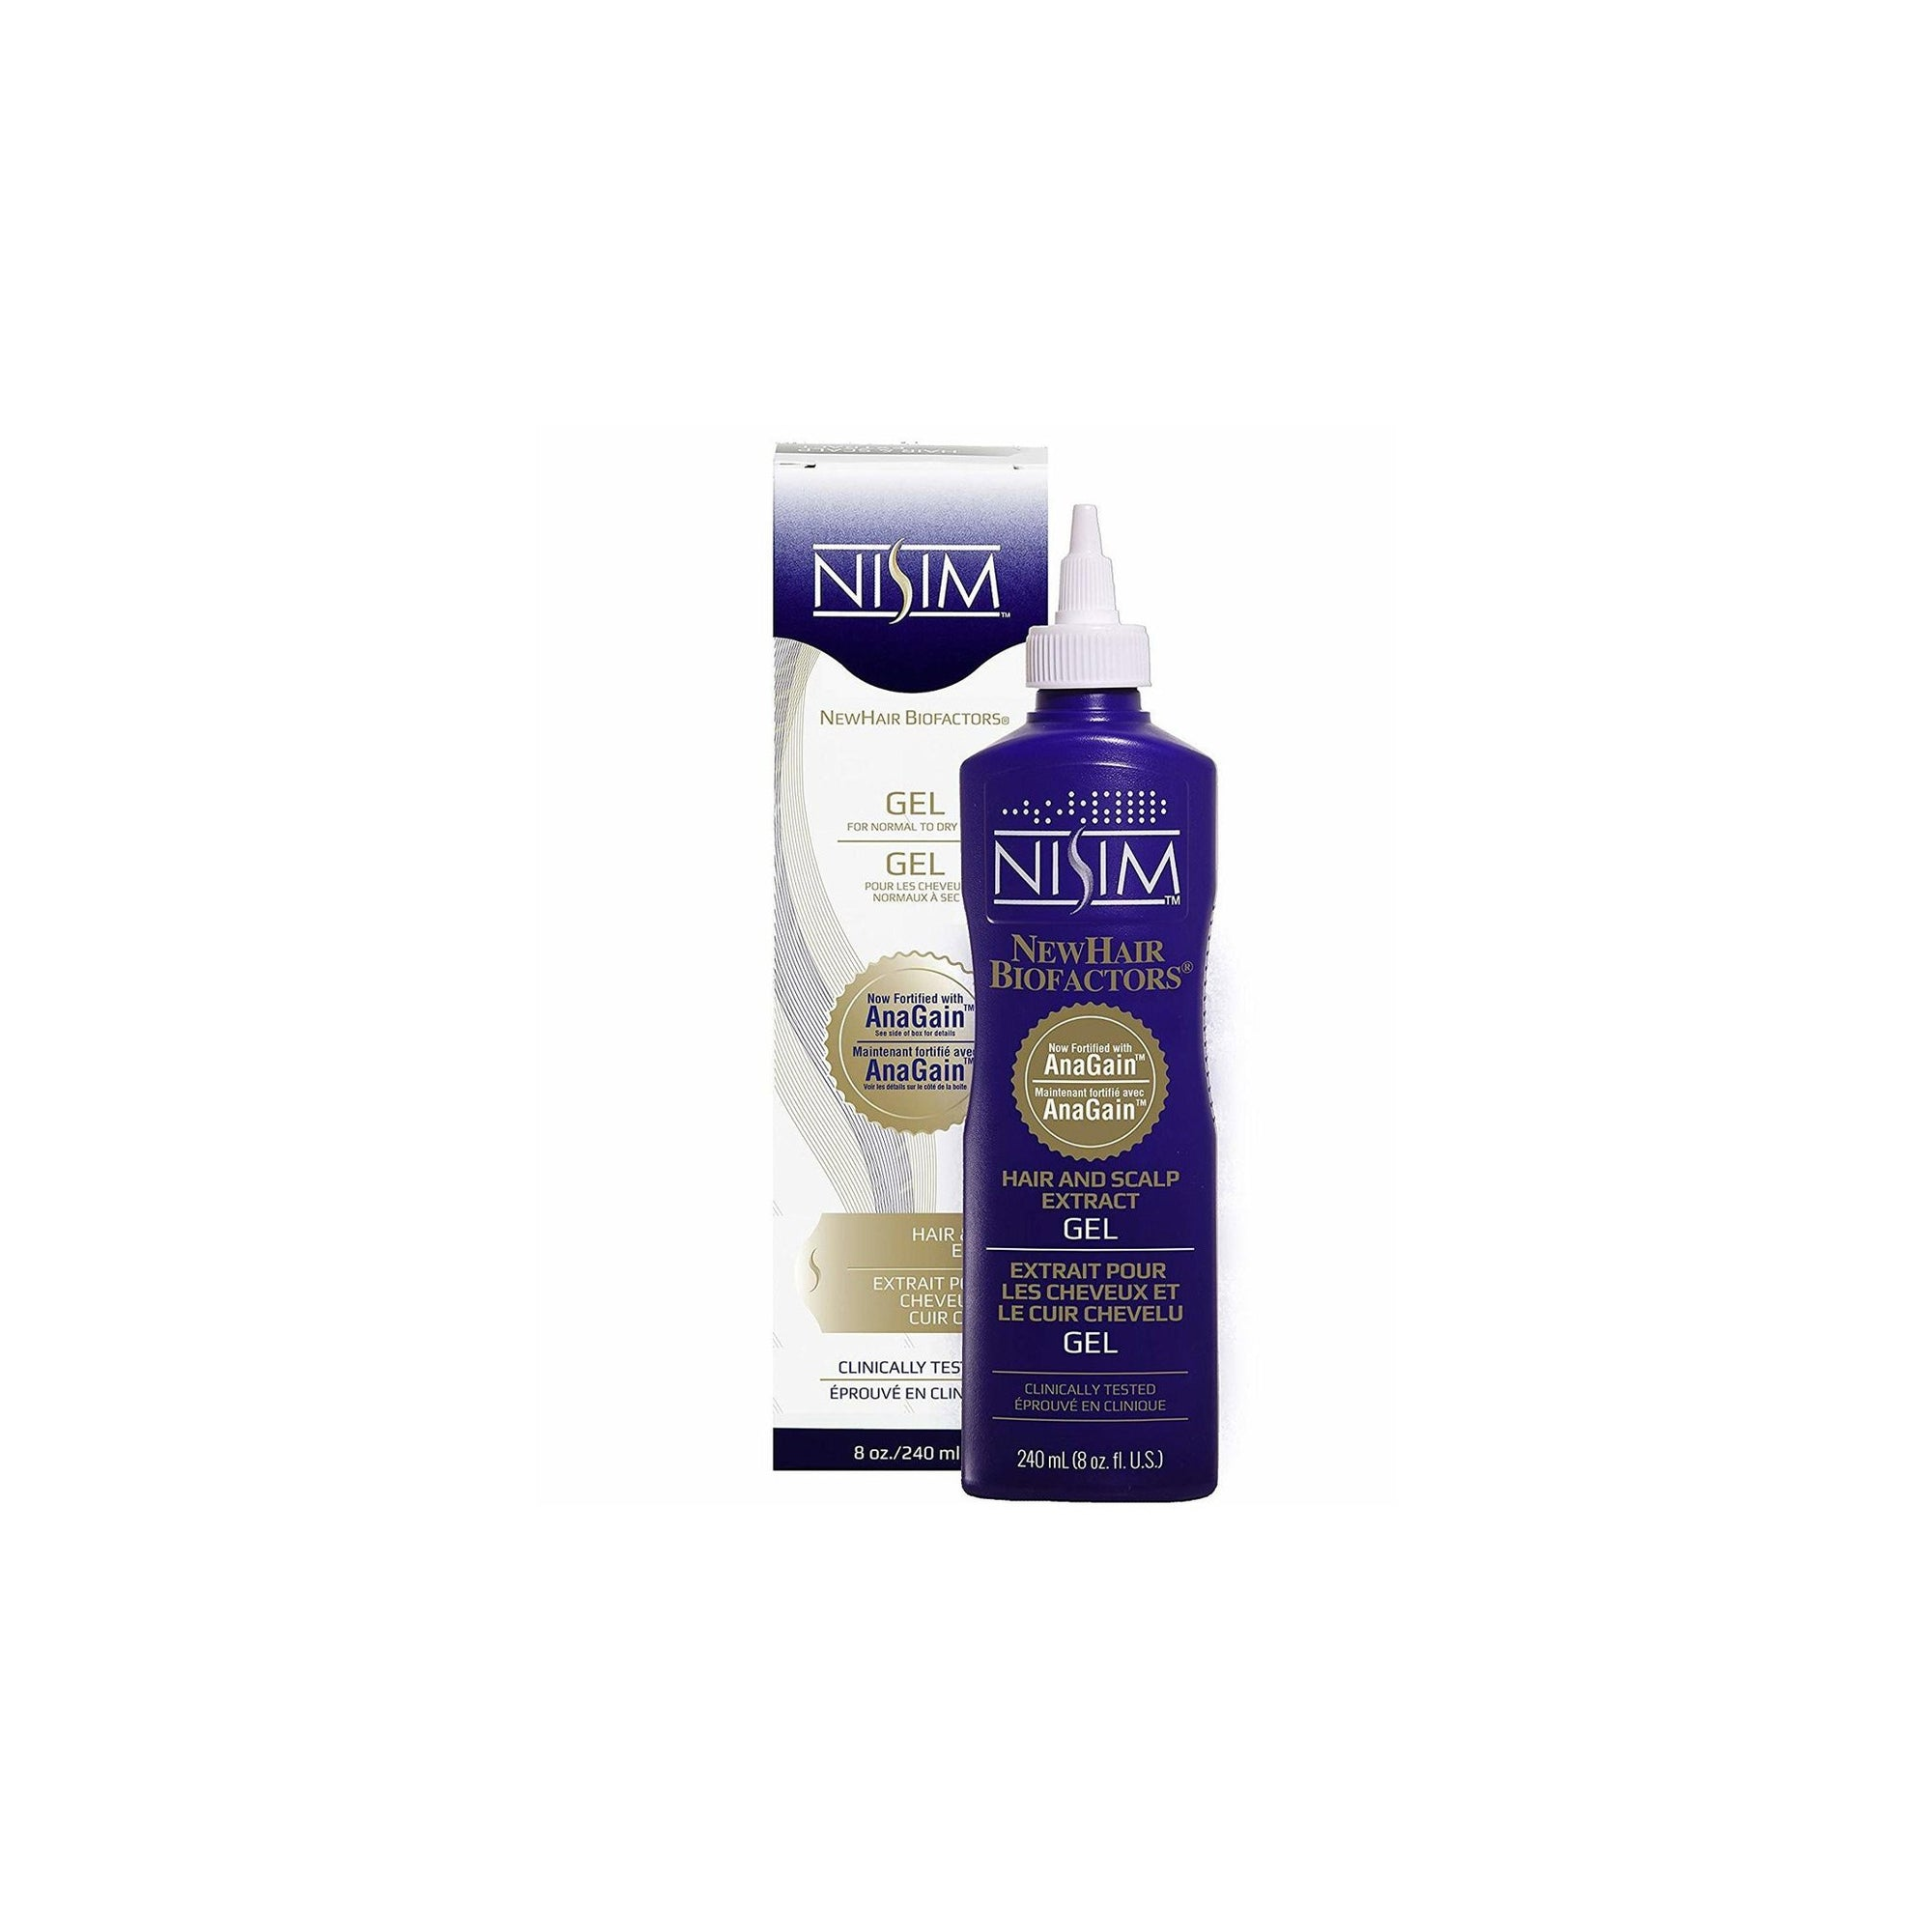 Nisim Hair & Scalp Extract - Normal to Oily Hair